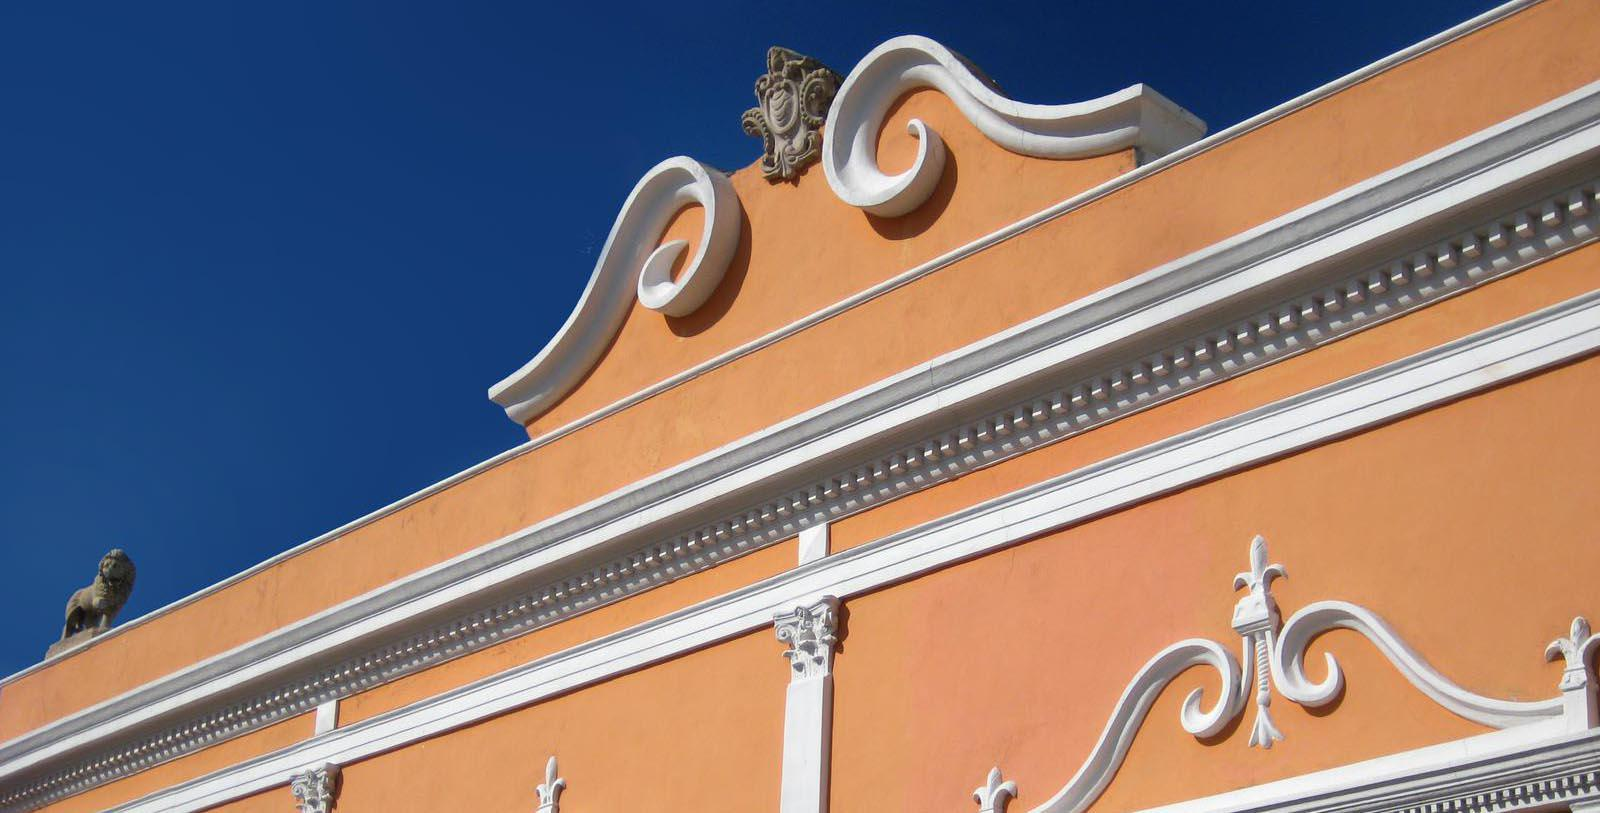 Image of Exterior Detail, Hotel Hacienda Merida, Mexico, 1700s, Member of Historic Hotels Worldwide, Discover